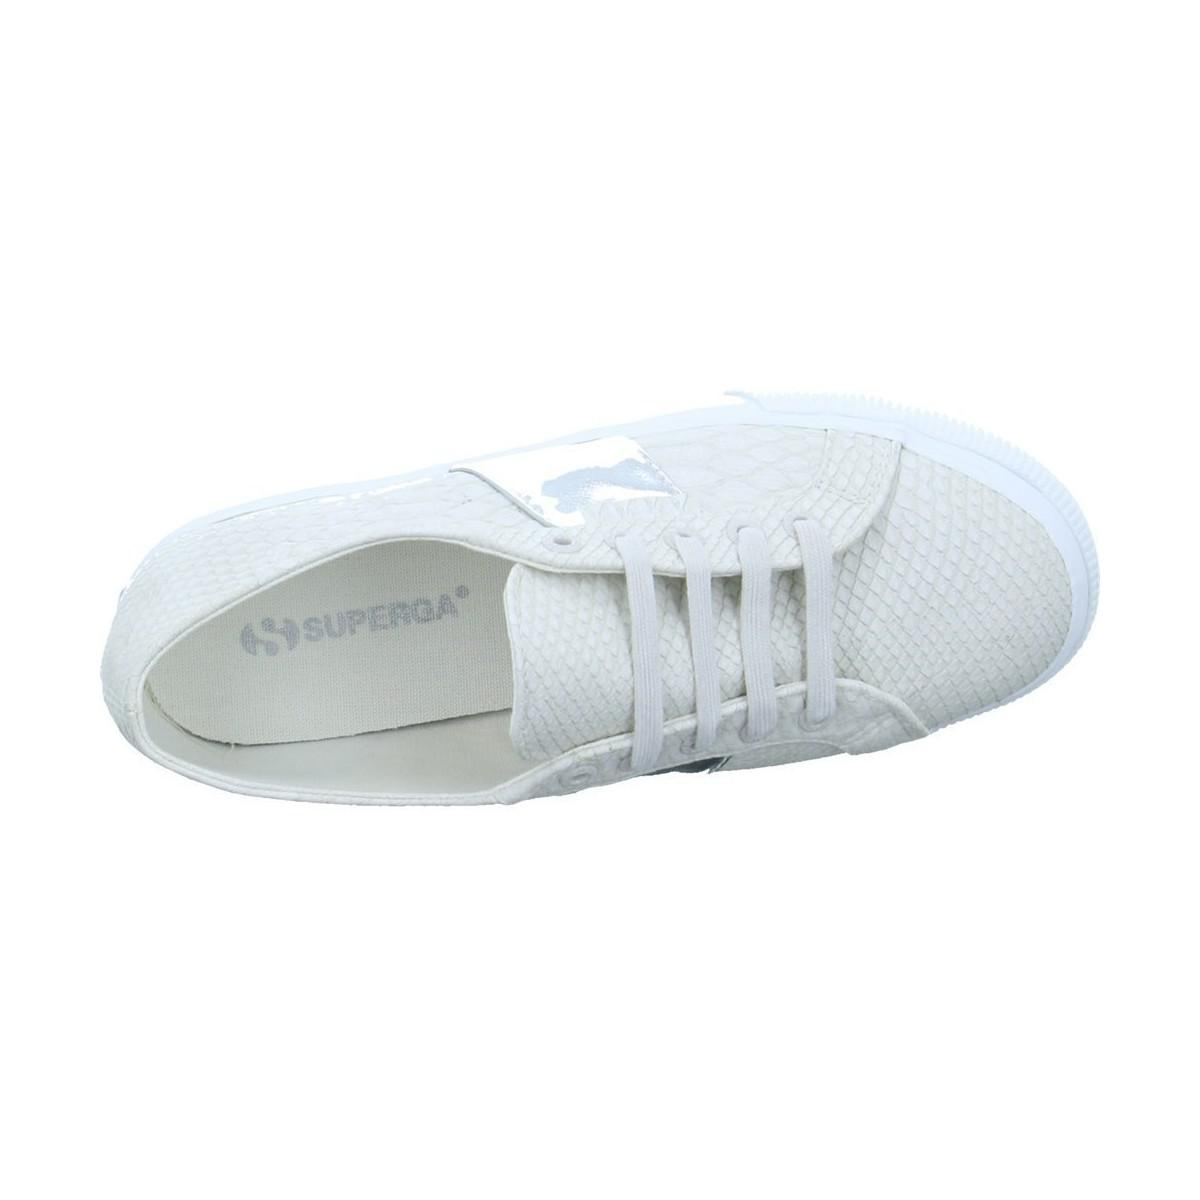 Superga 2790 Pusnakew Women's Shoes (trainers) In White